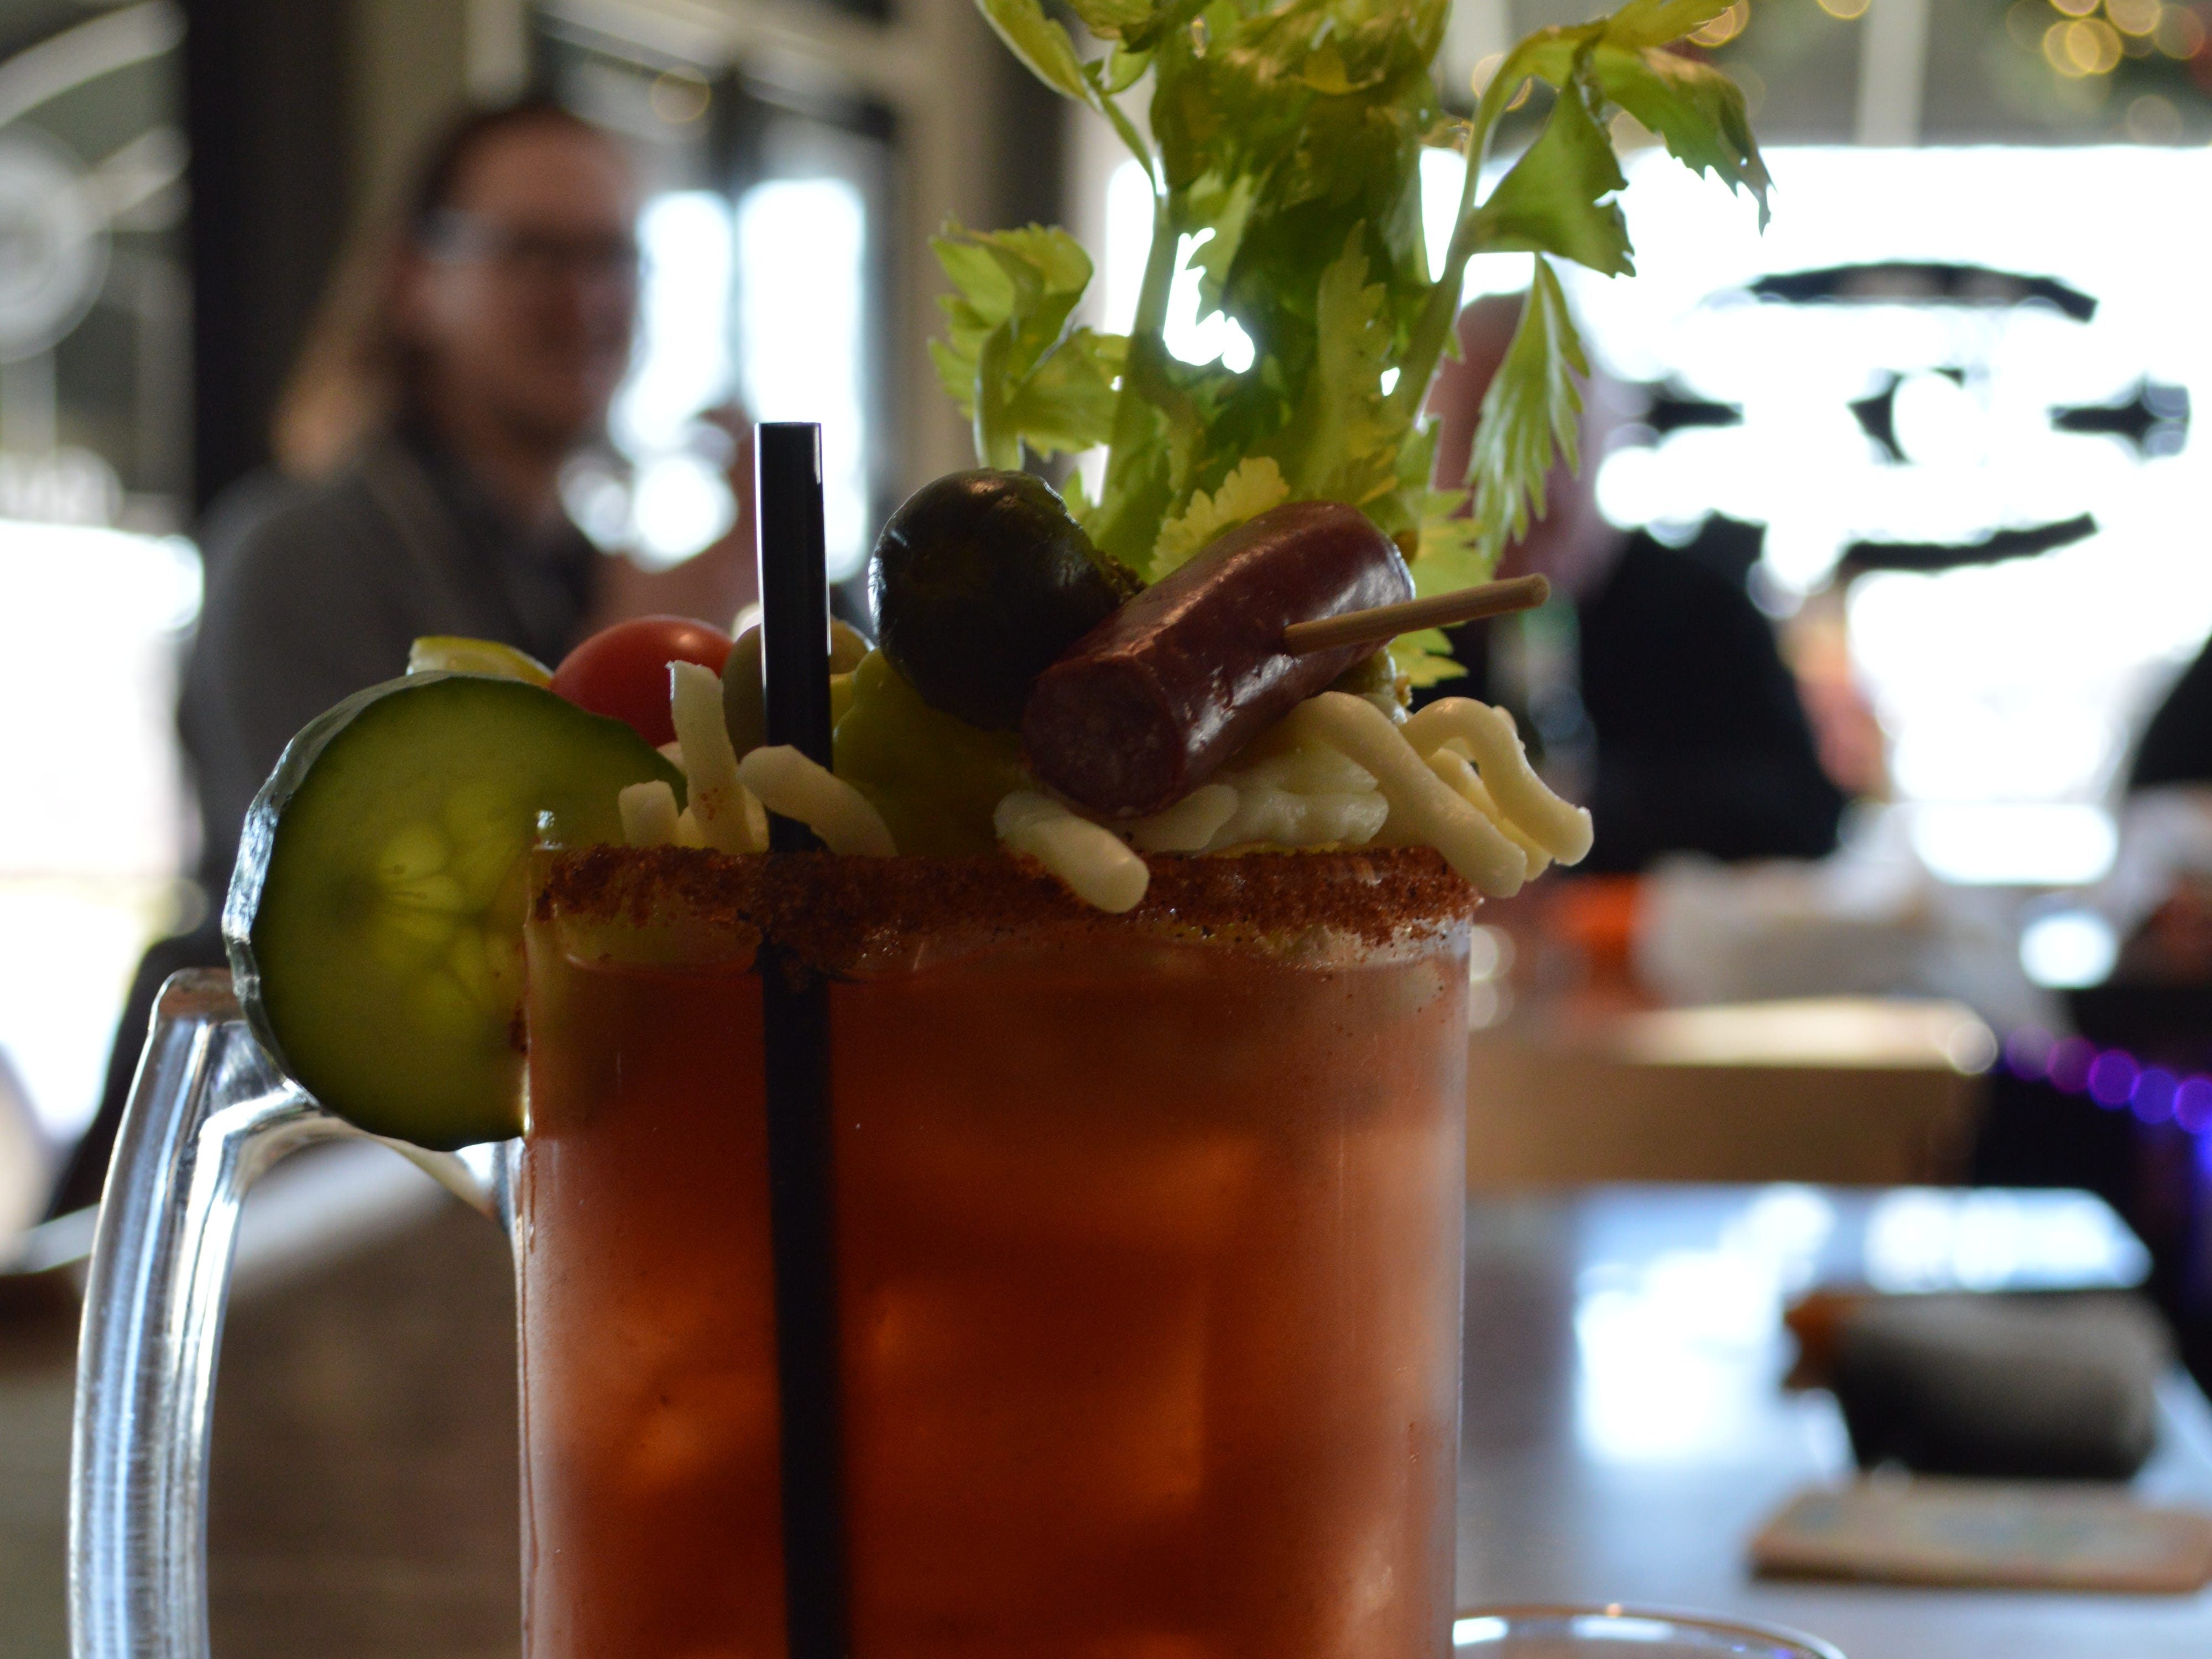 The Matty Mary is 25-ounces and costs $9.75.